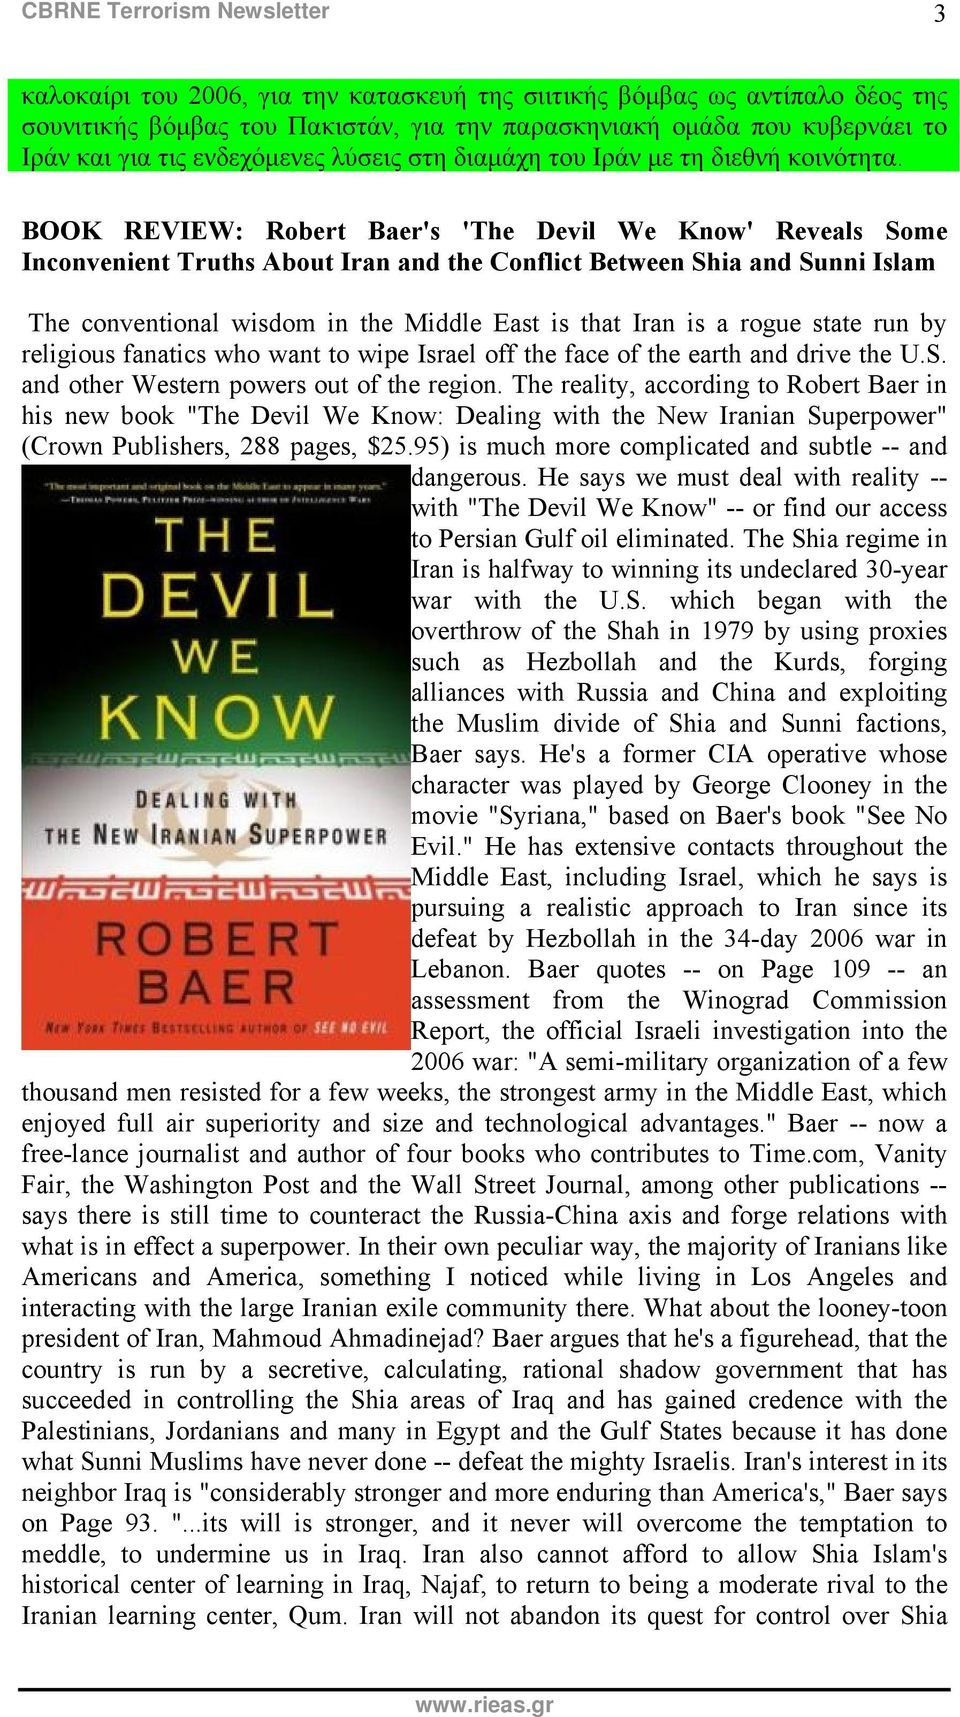 BOOK REVIEW: Robert Baer's 'The Devil We Know' Reveals Some Inconvenient Truths About Iran and the Conflict Between Shia and Sunni Islam The conventional wisdom in the Middle East is that Iran is a